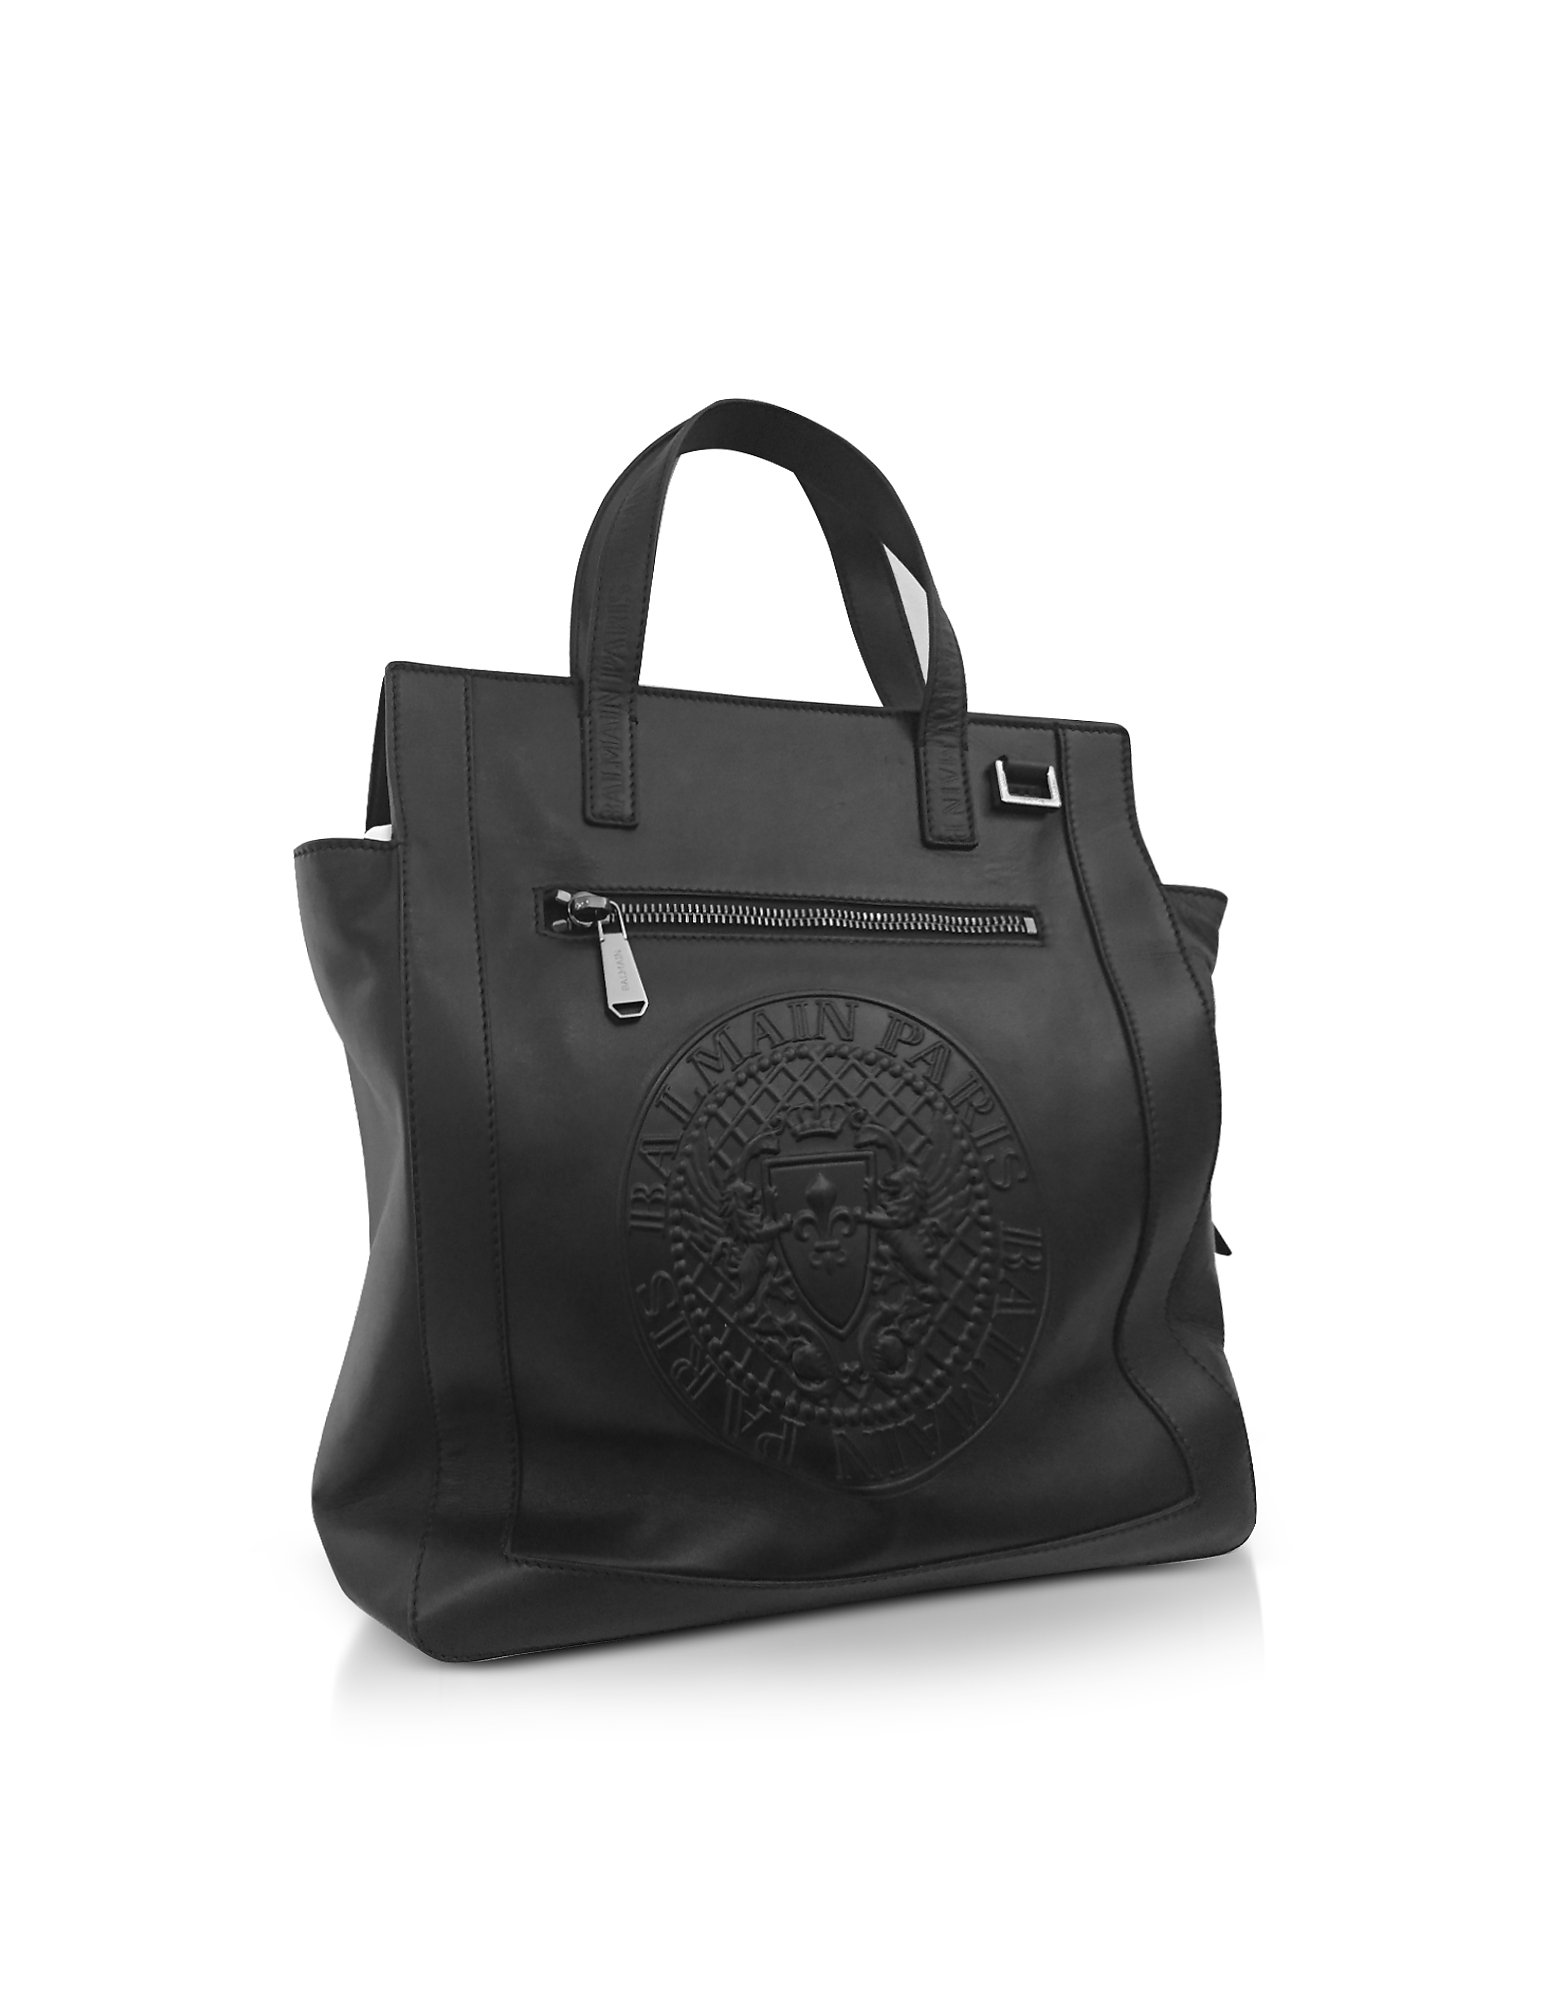 Black Smooth Leather Men's Square Tote Bag w/Embossed Blazon от Forzieri.com INT